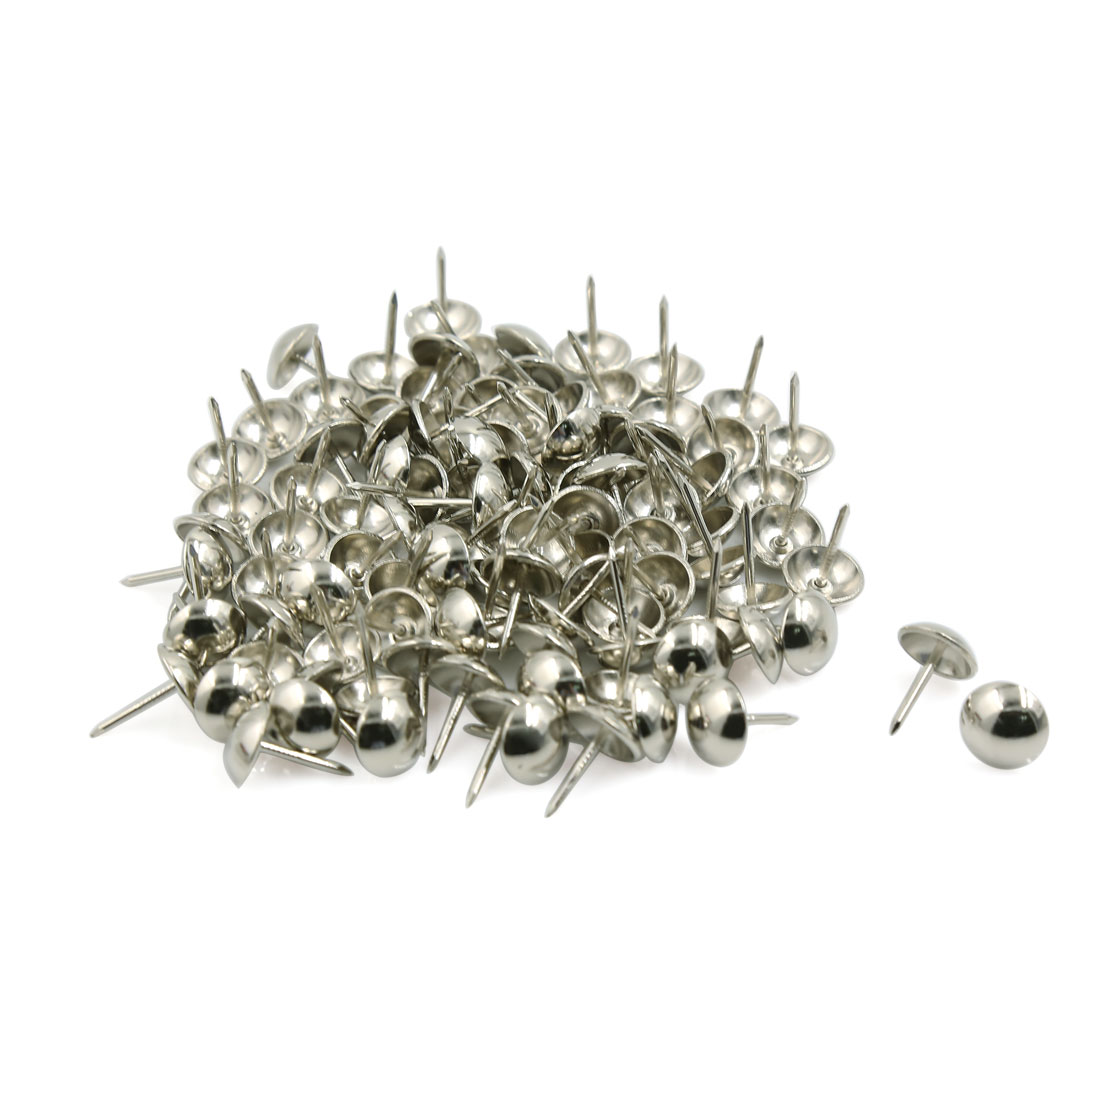 Unique Bargains 100 Pcs Home/Office Board Map Push Pins Thumbtacks w Steel Point